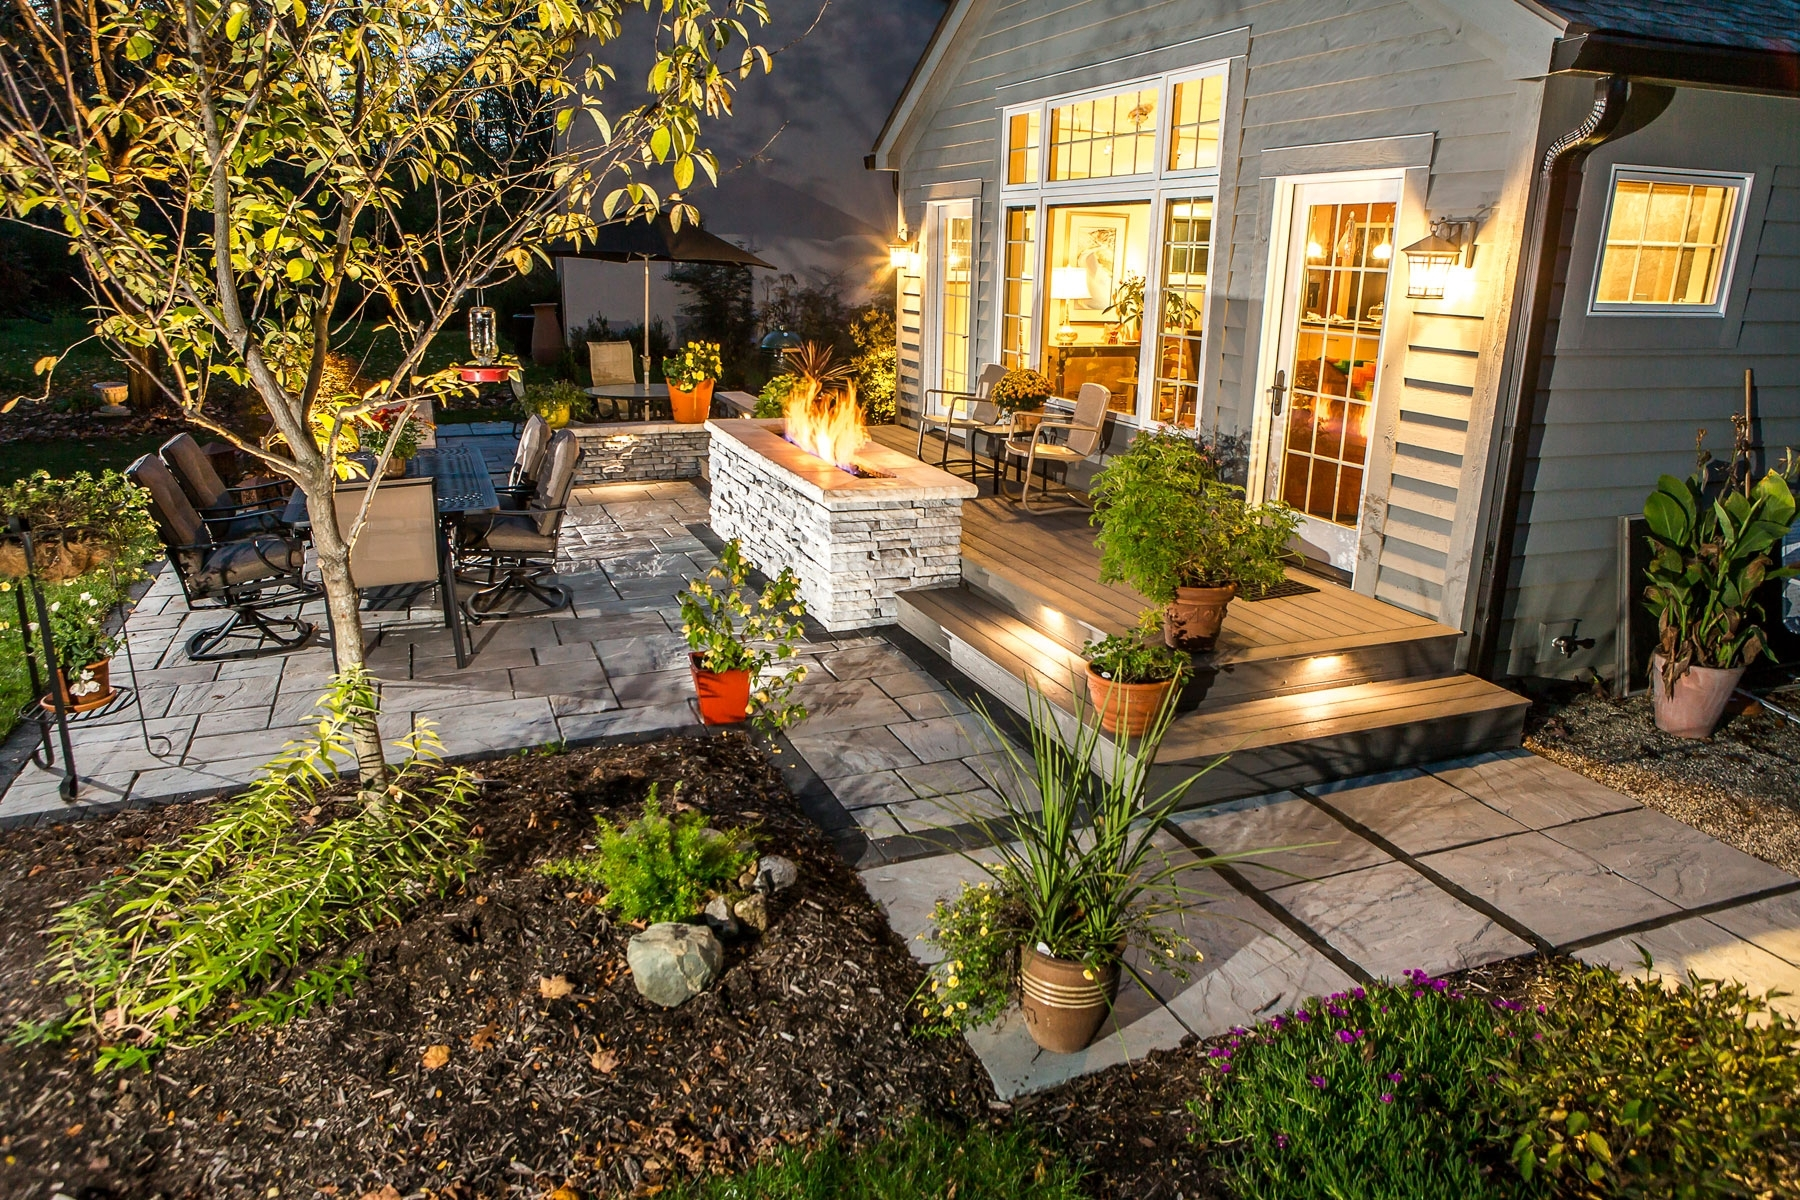 Outdoor Landscape Lighting For Patios, Walkways, And Retaining Walls Intended For Most Current Outdoor Retaining Wall Lighting (View 18 of 20)